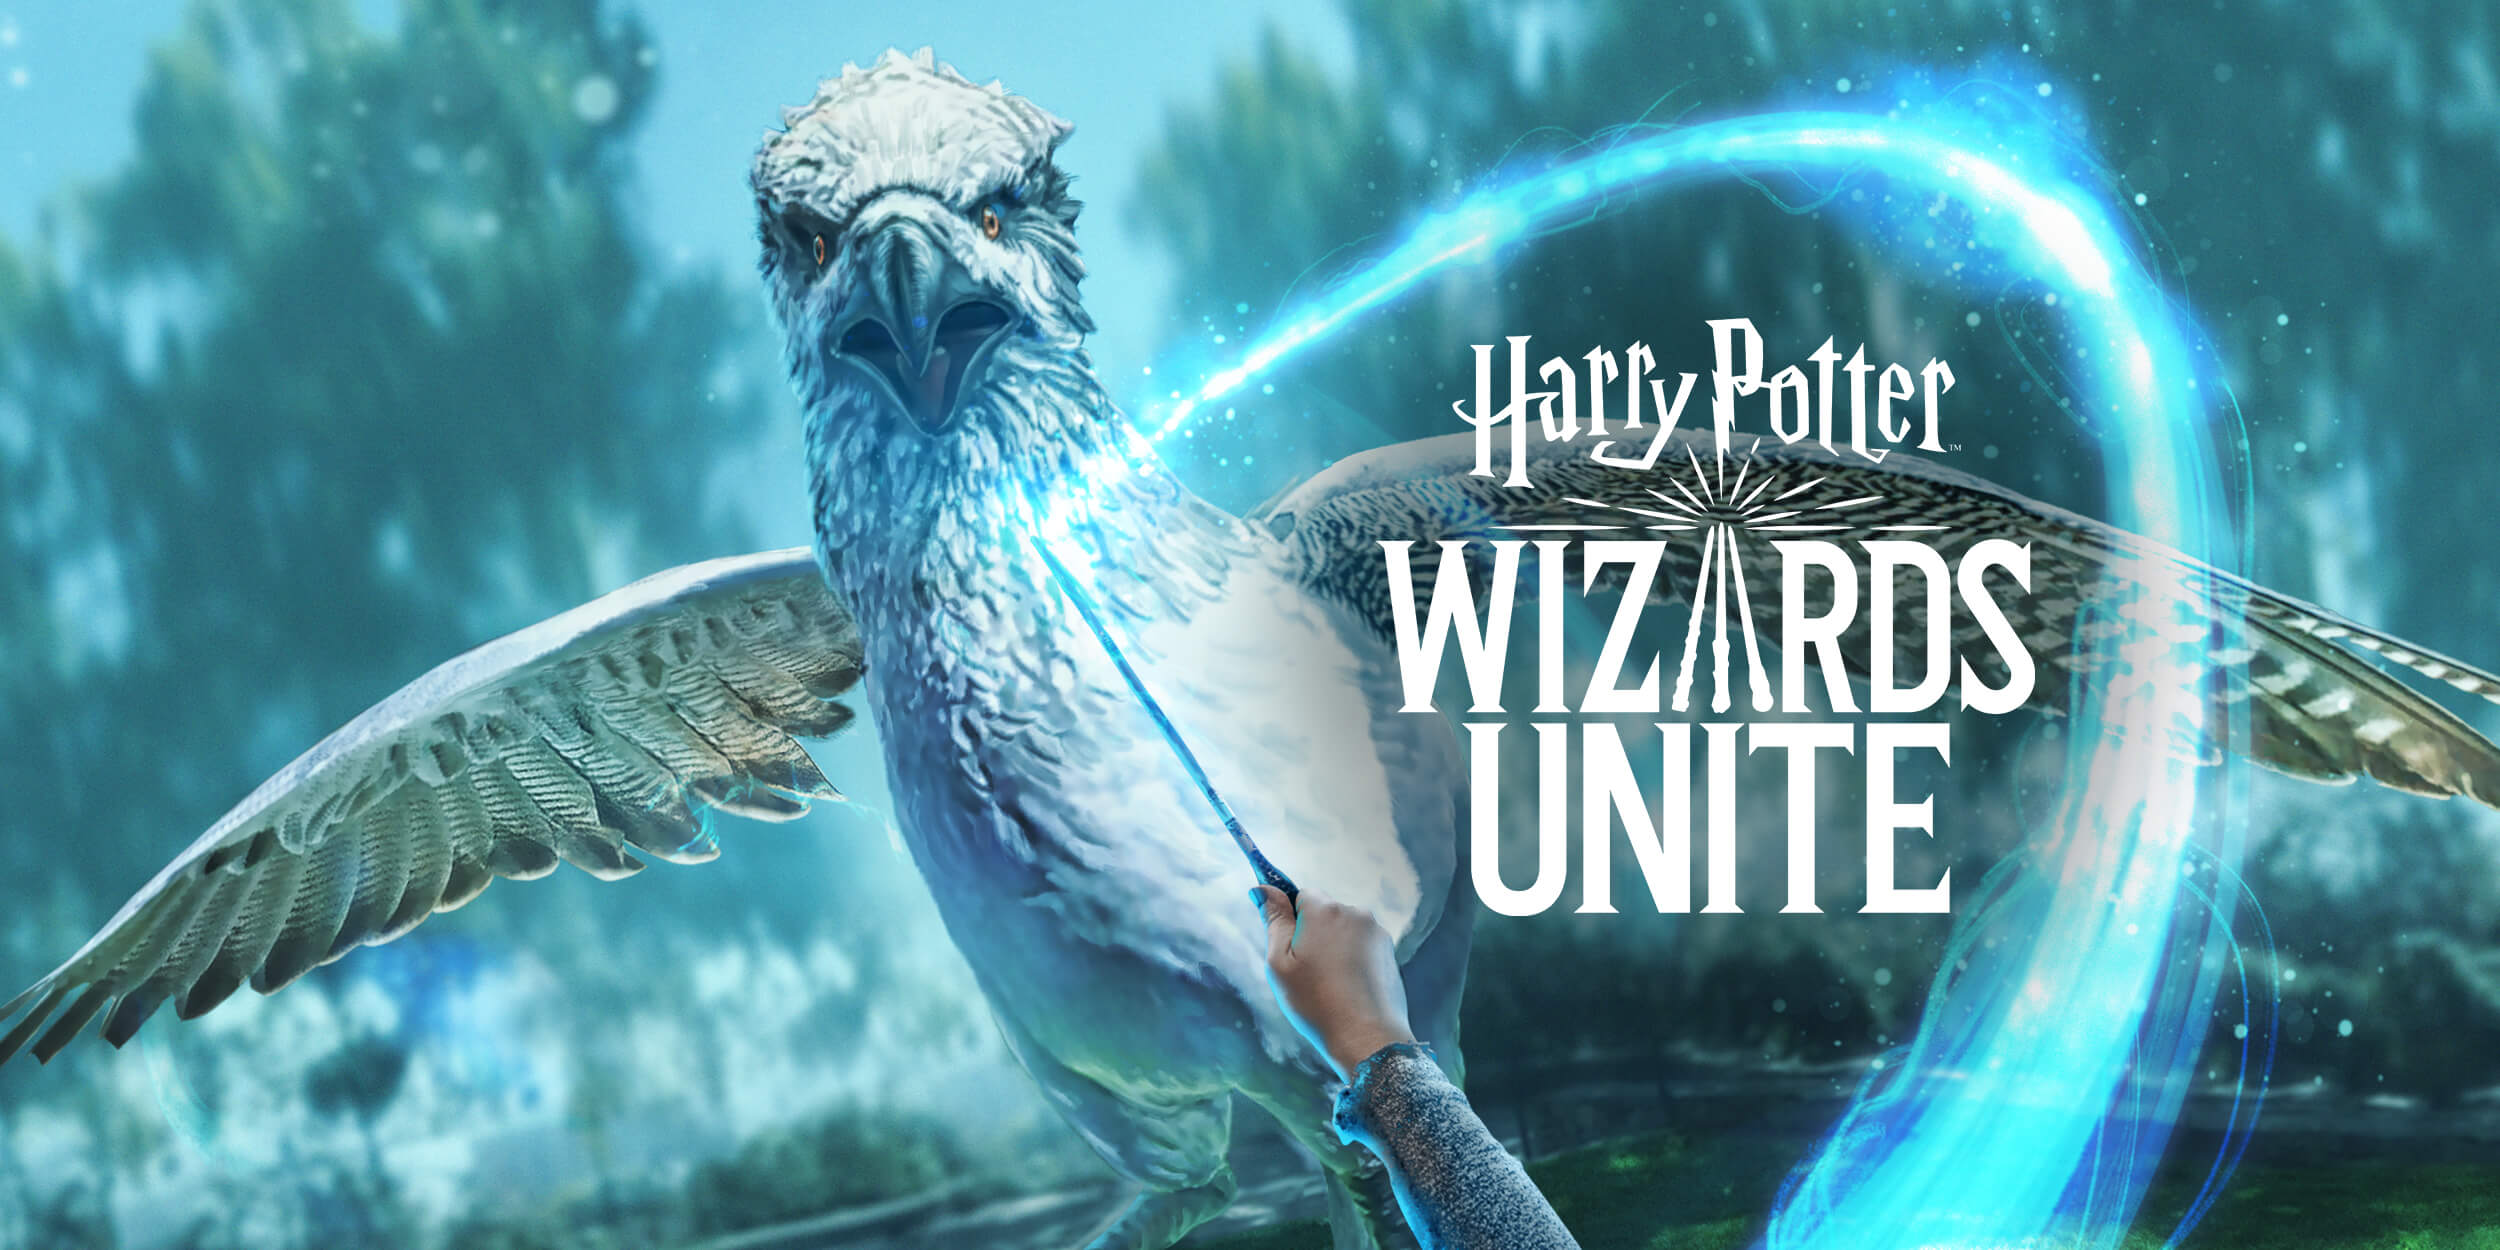 Harry Potter: Wizards Unite looks to expand on the Pokemon GO formula